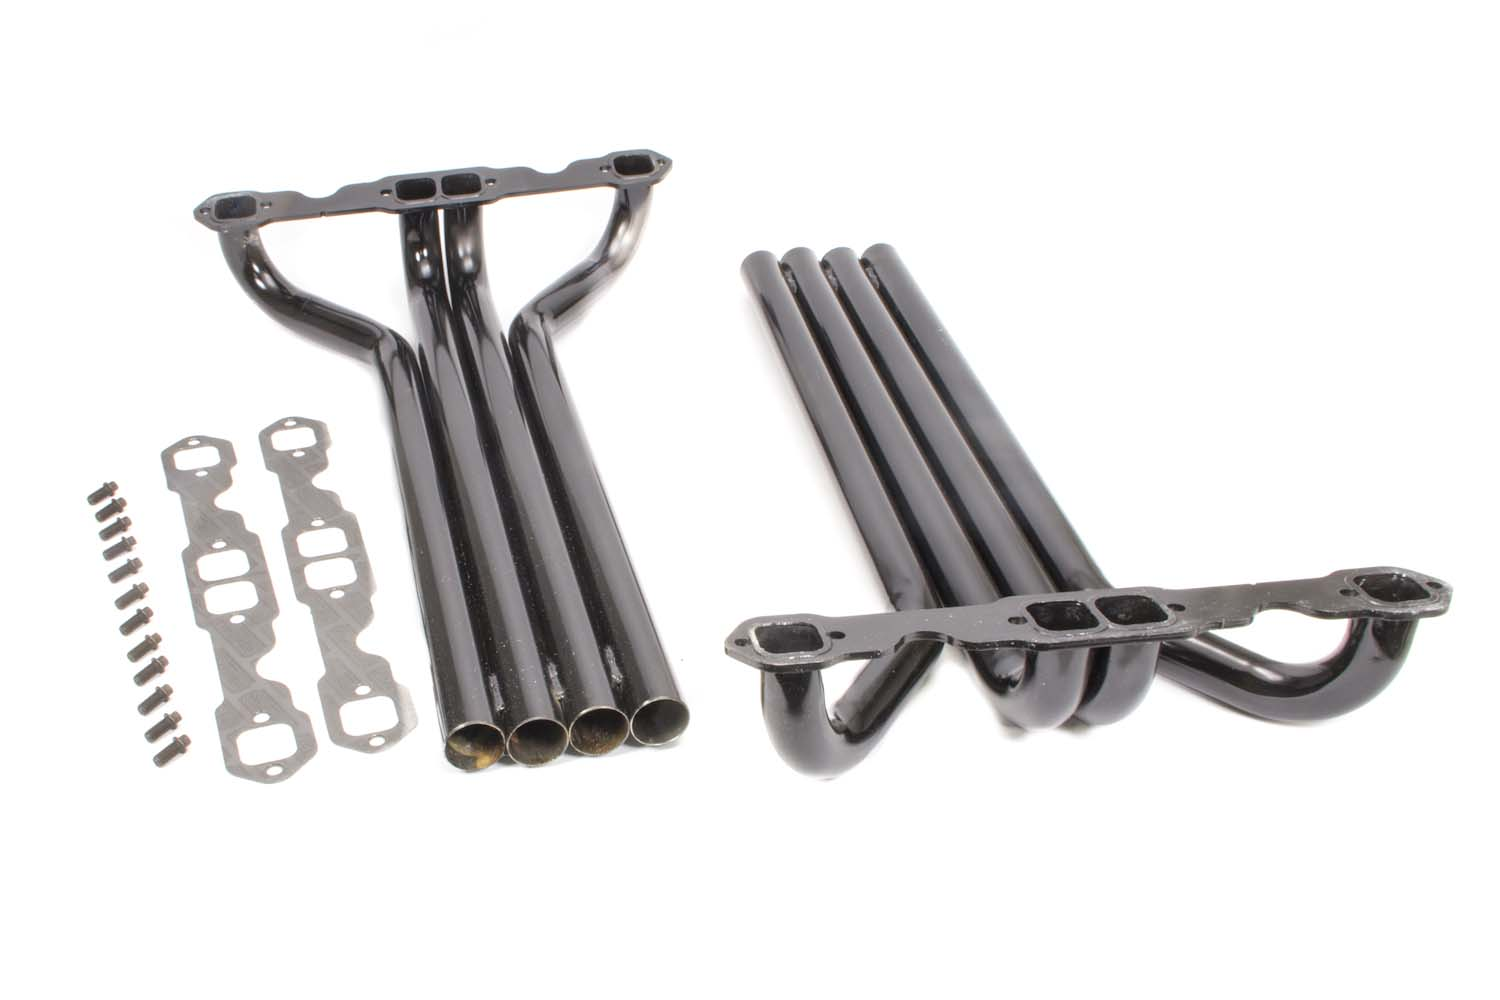 Schoenfeld Exhaust Header Fits Small Block Chevy For